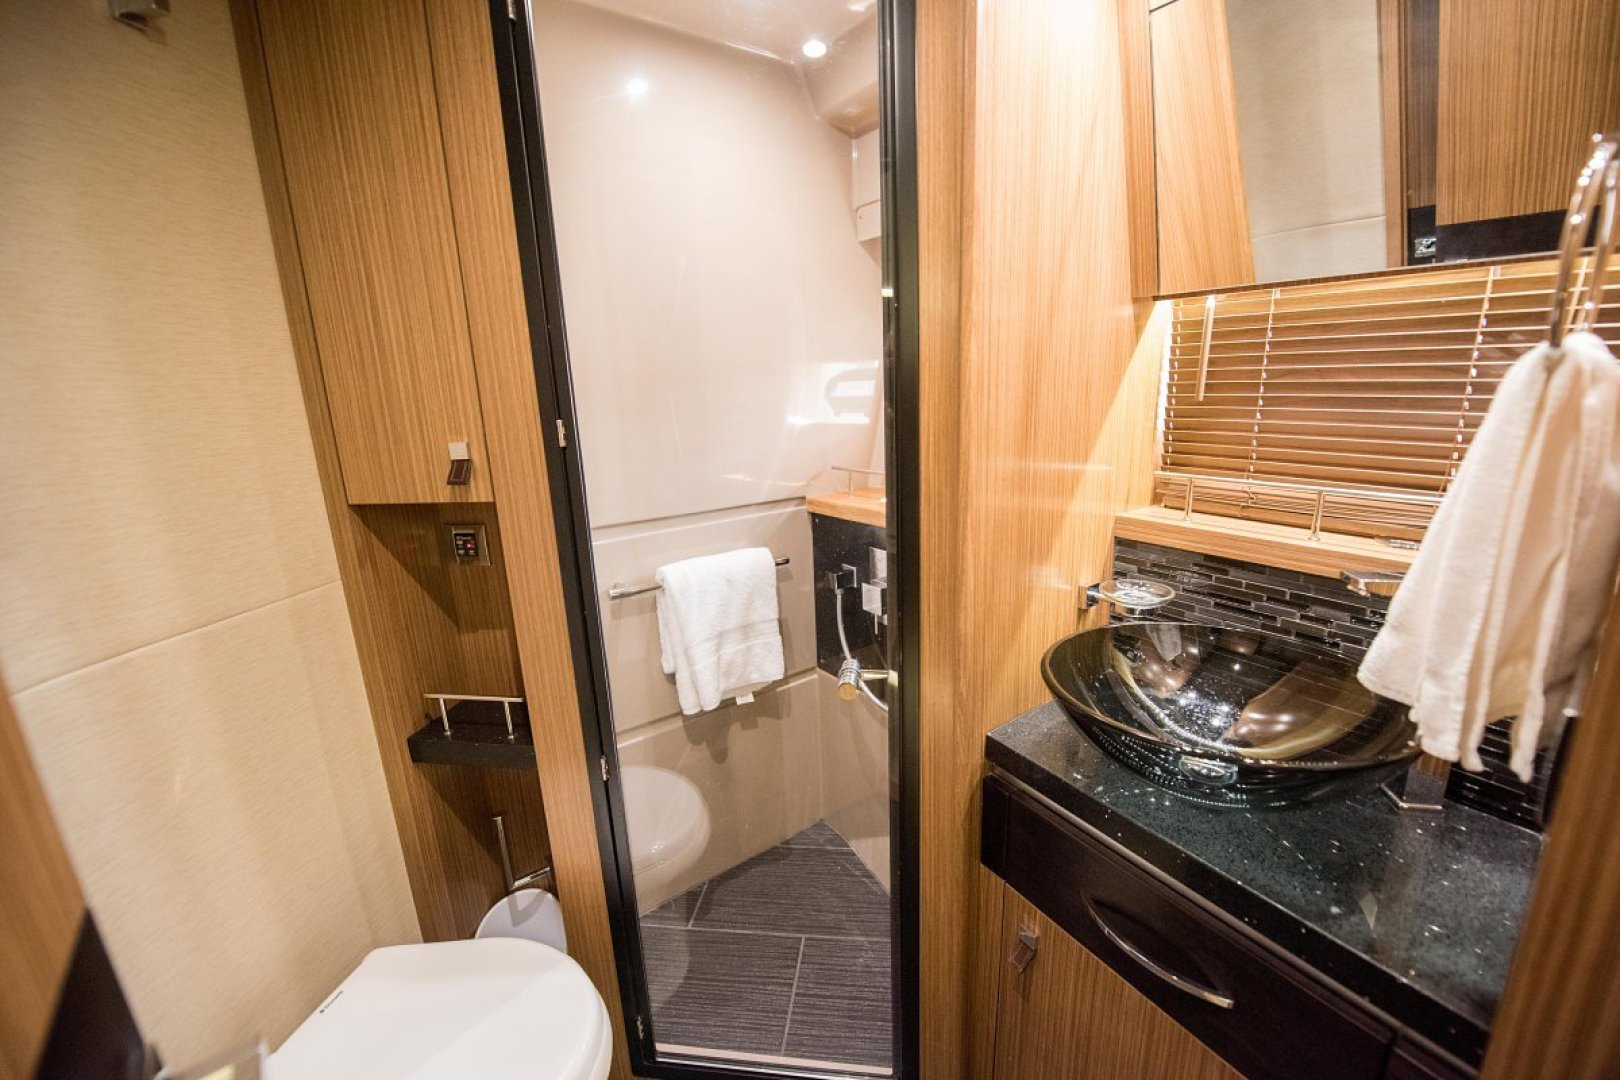 Sea Ray-L590 Fly 2016-2016 Sea Ray L590 Fly Ft. Lauderdale-Florida-United States-1284640 | Thumbnail